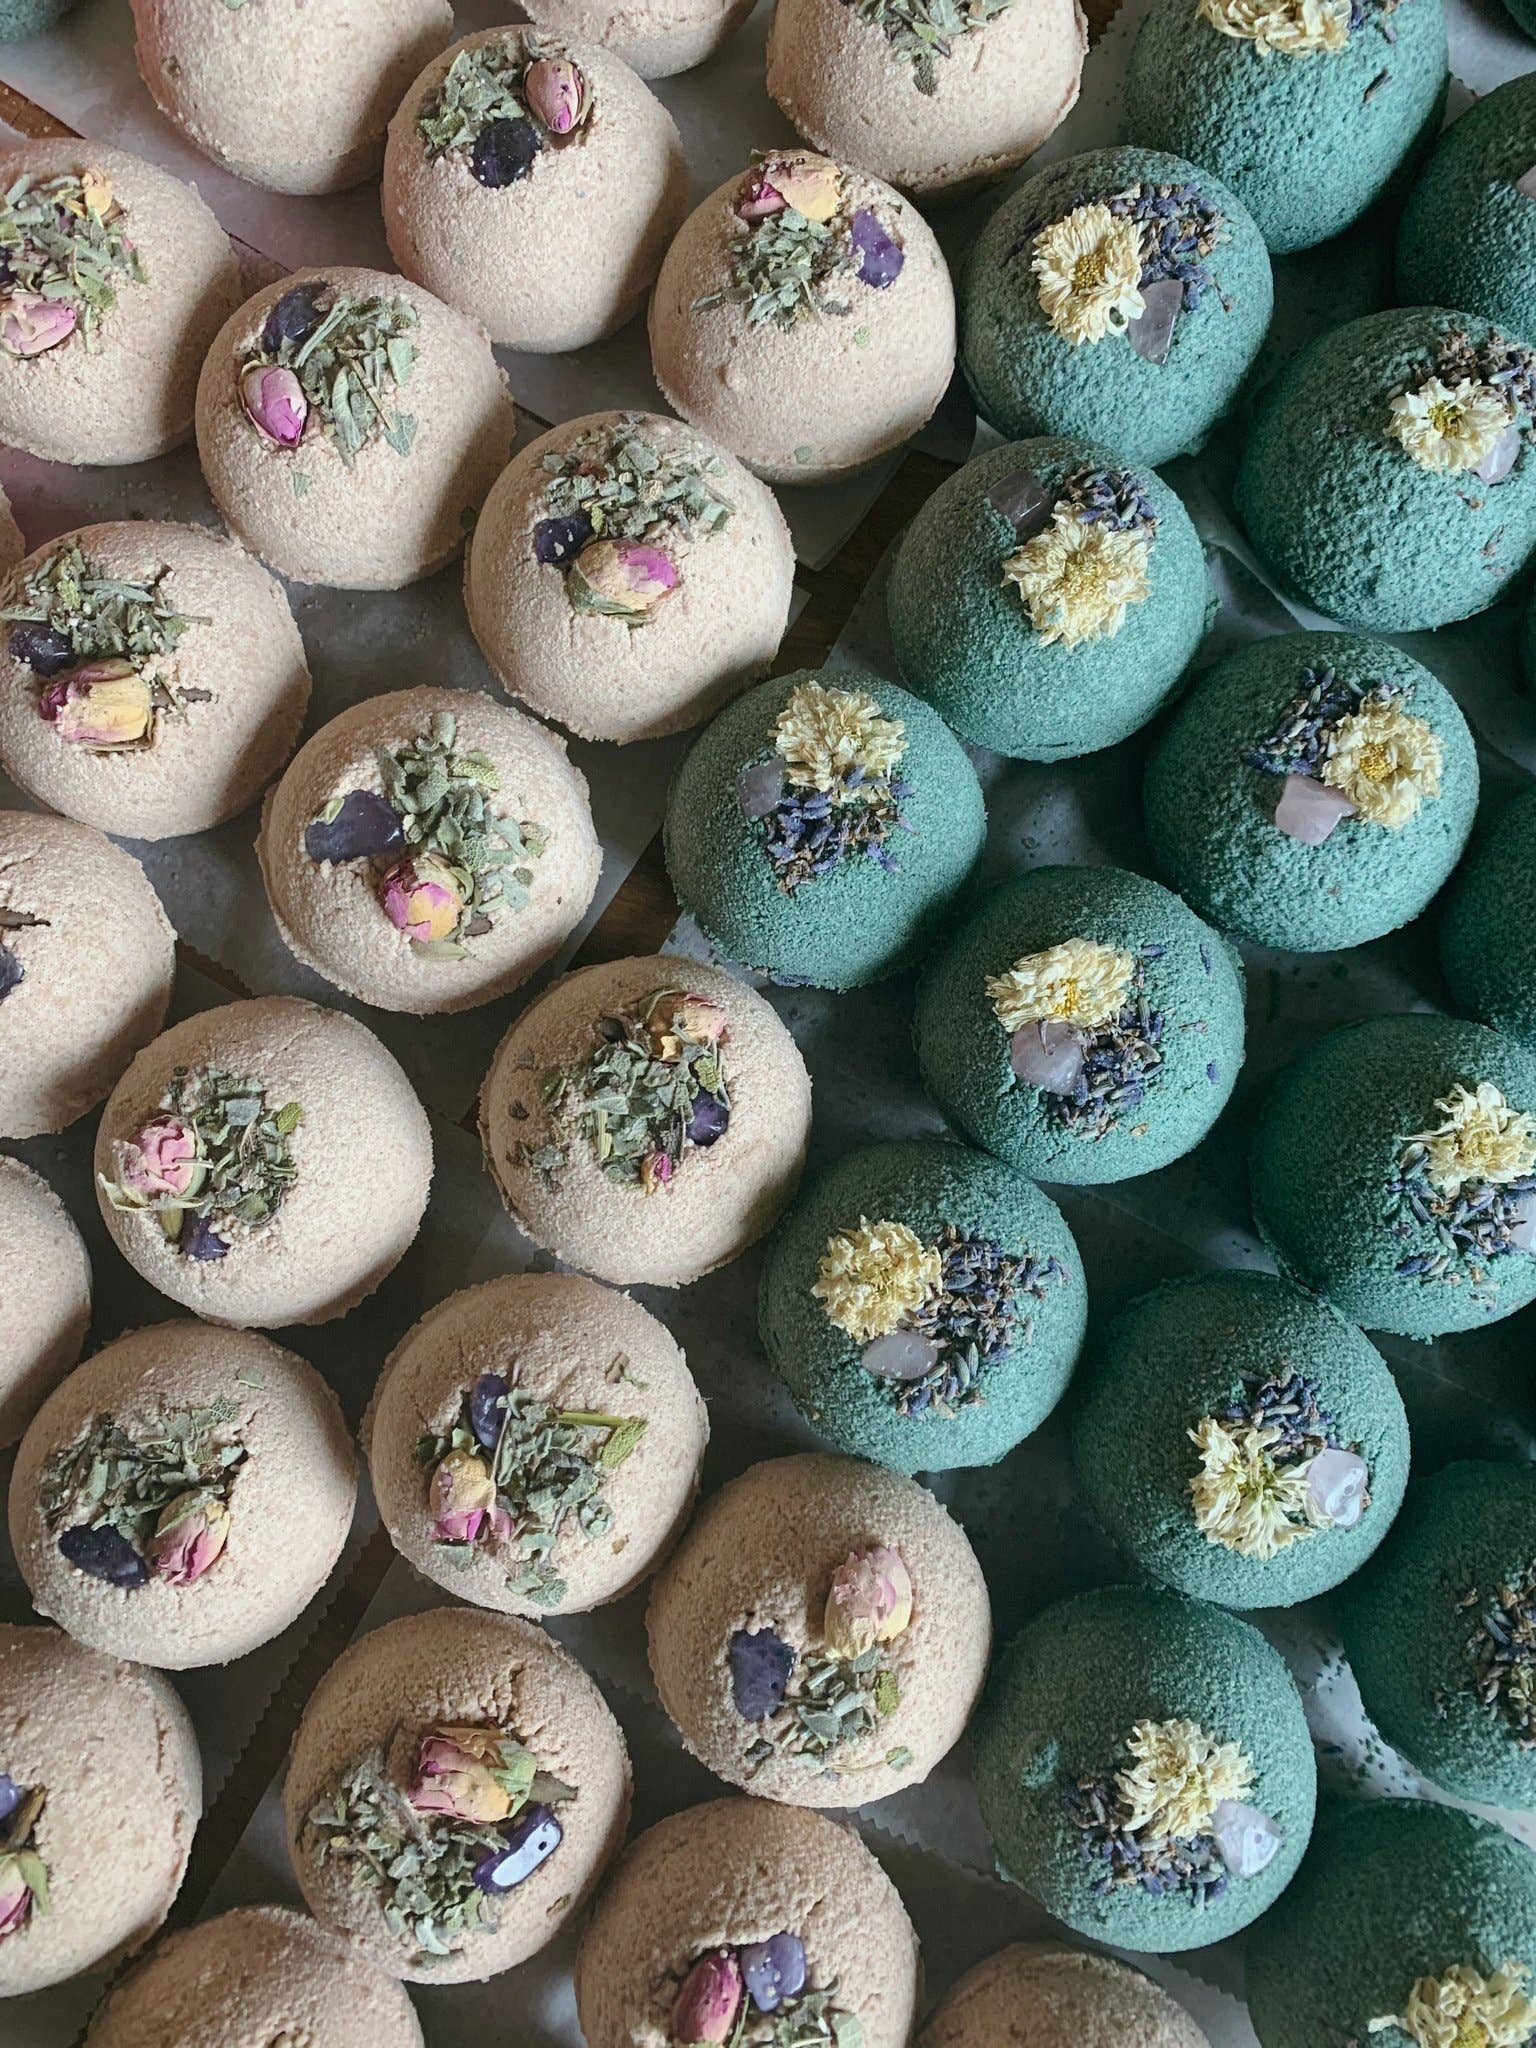 Crystal Ritual Bath Bombs